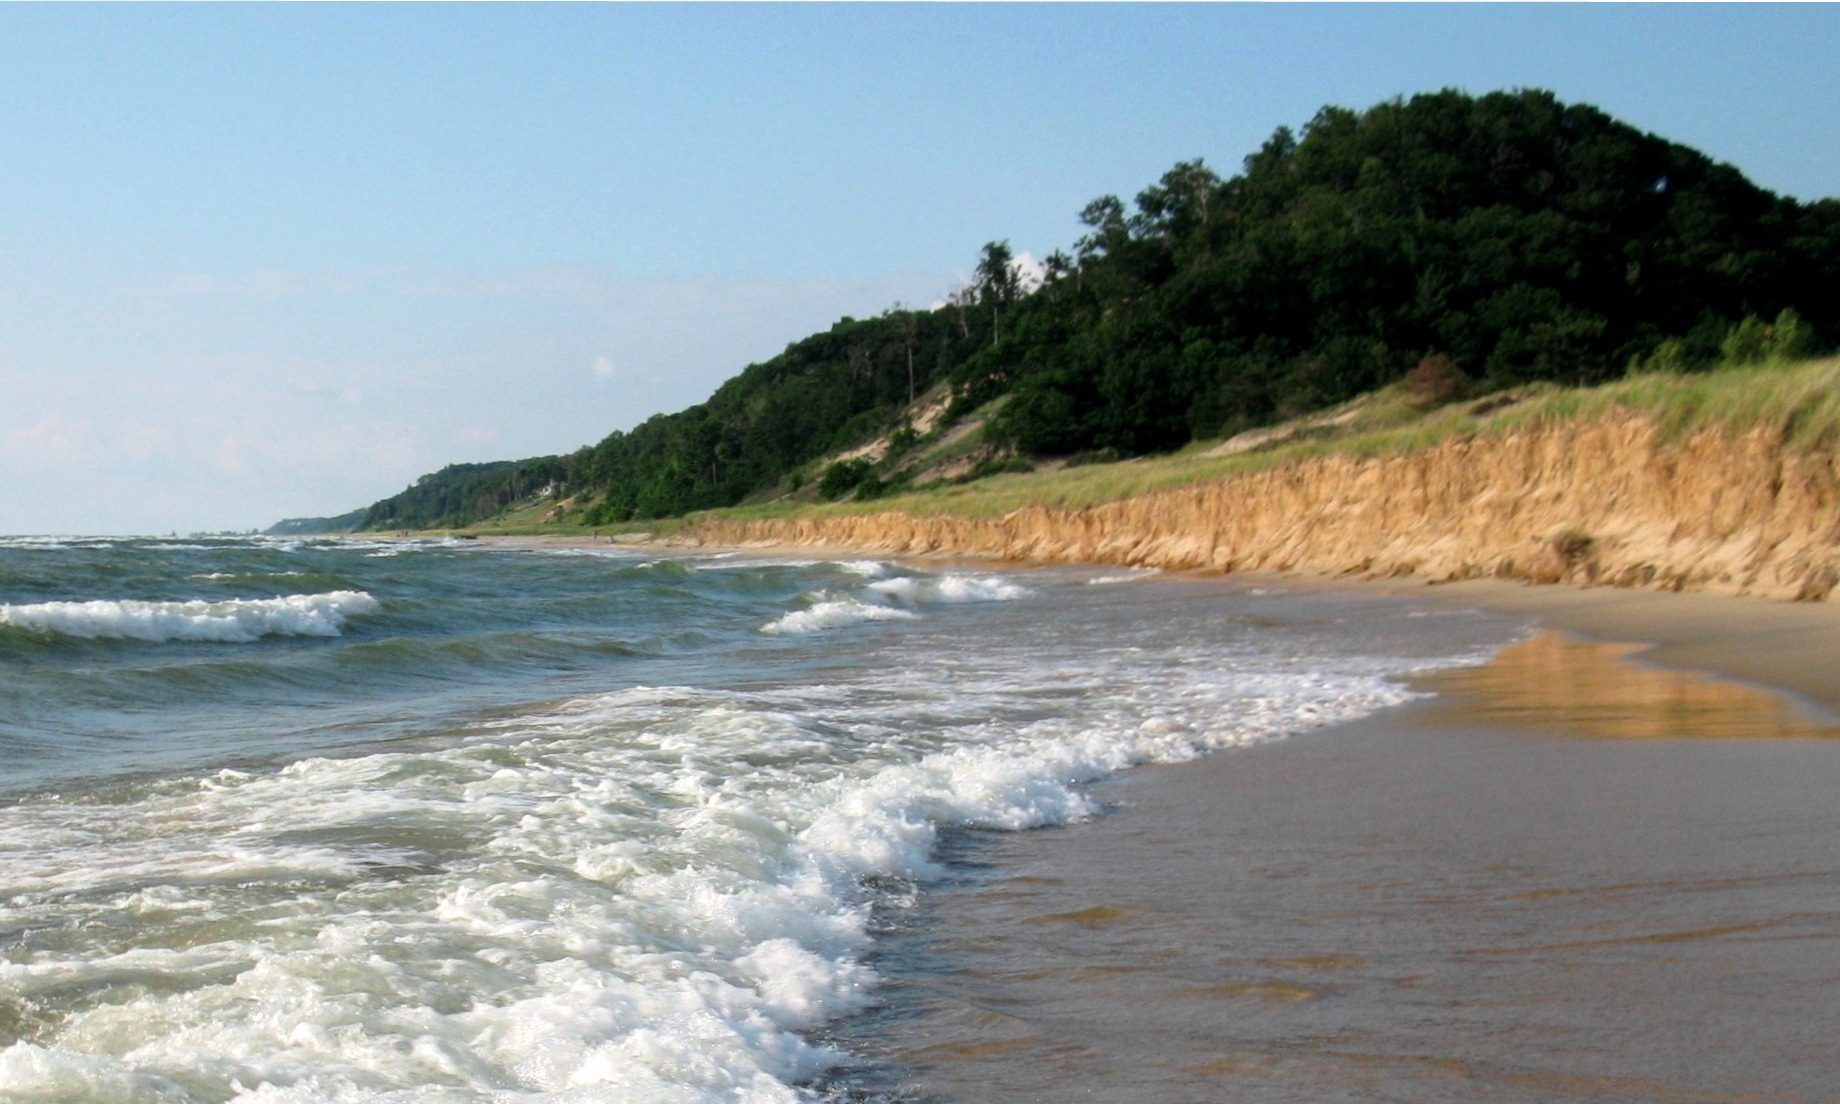 Water_and_Covered_Dune,_Looking_North,_Saugatuck_Dunes_State_Park,_Michigan